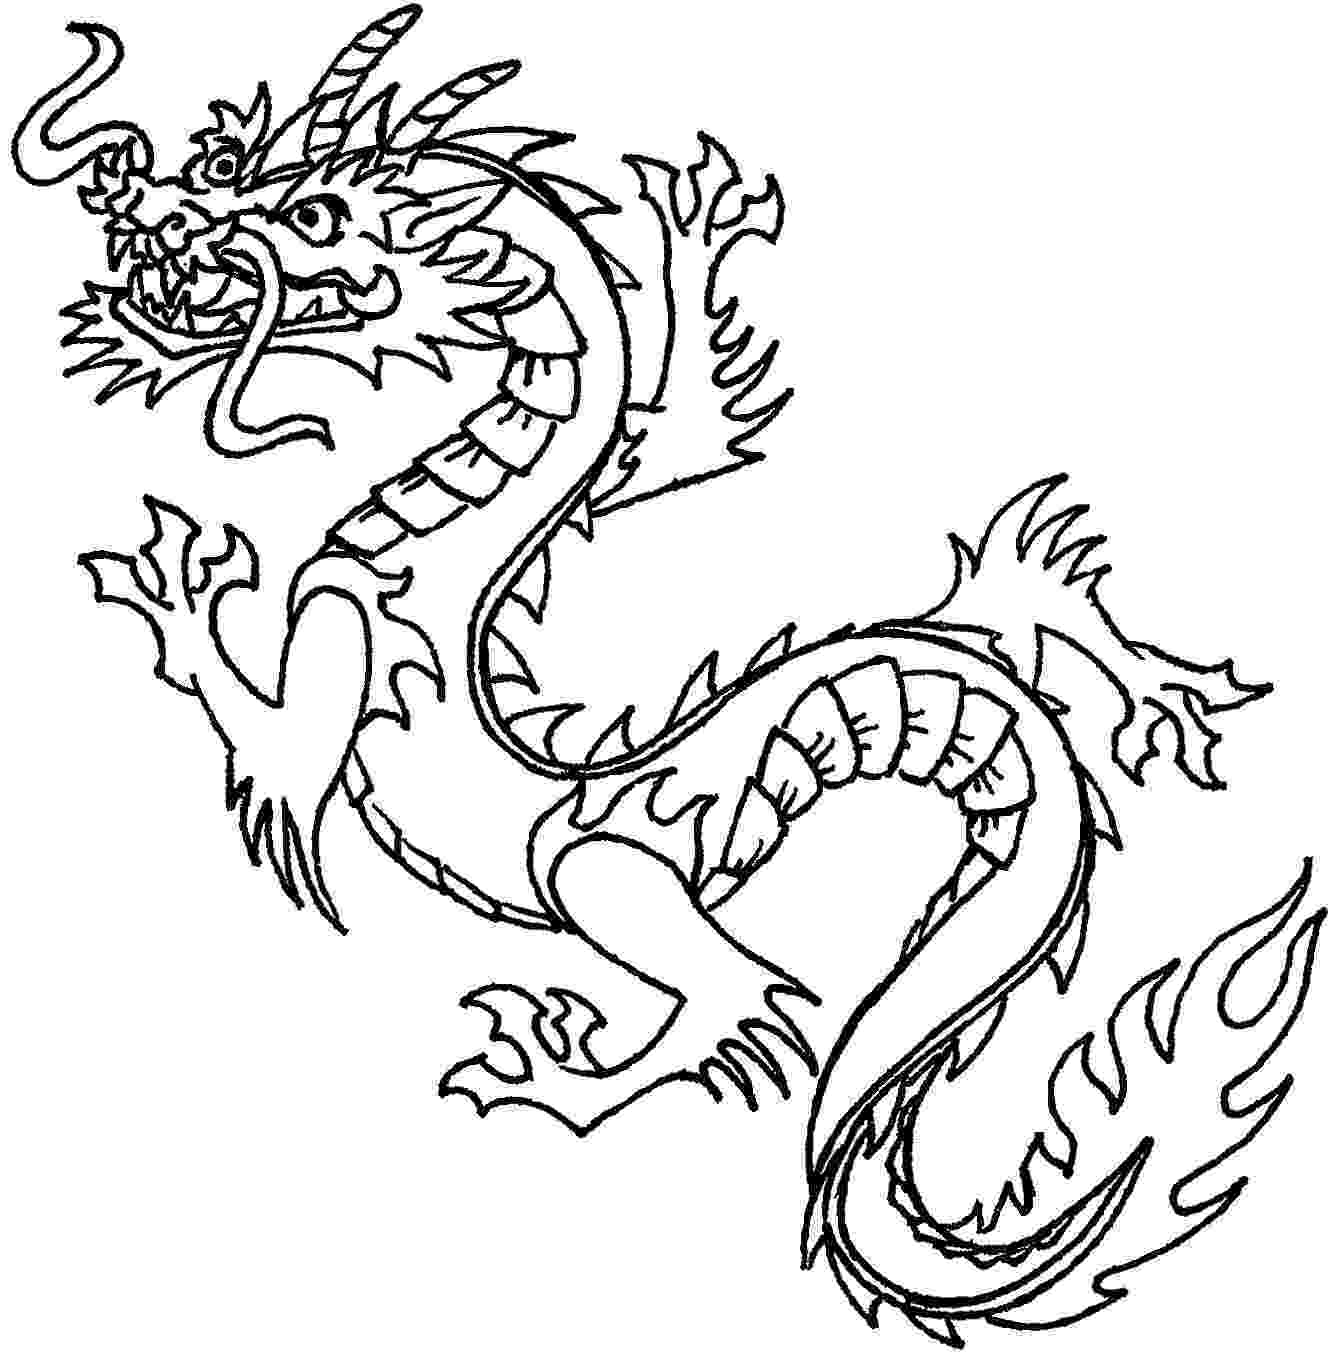 chinese dragon coloring pages free printable chinese dragon coloring pages for kids dragon coloring chinese pages